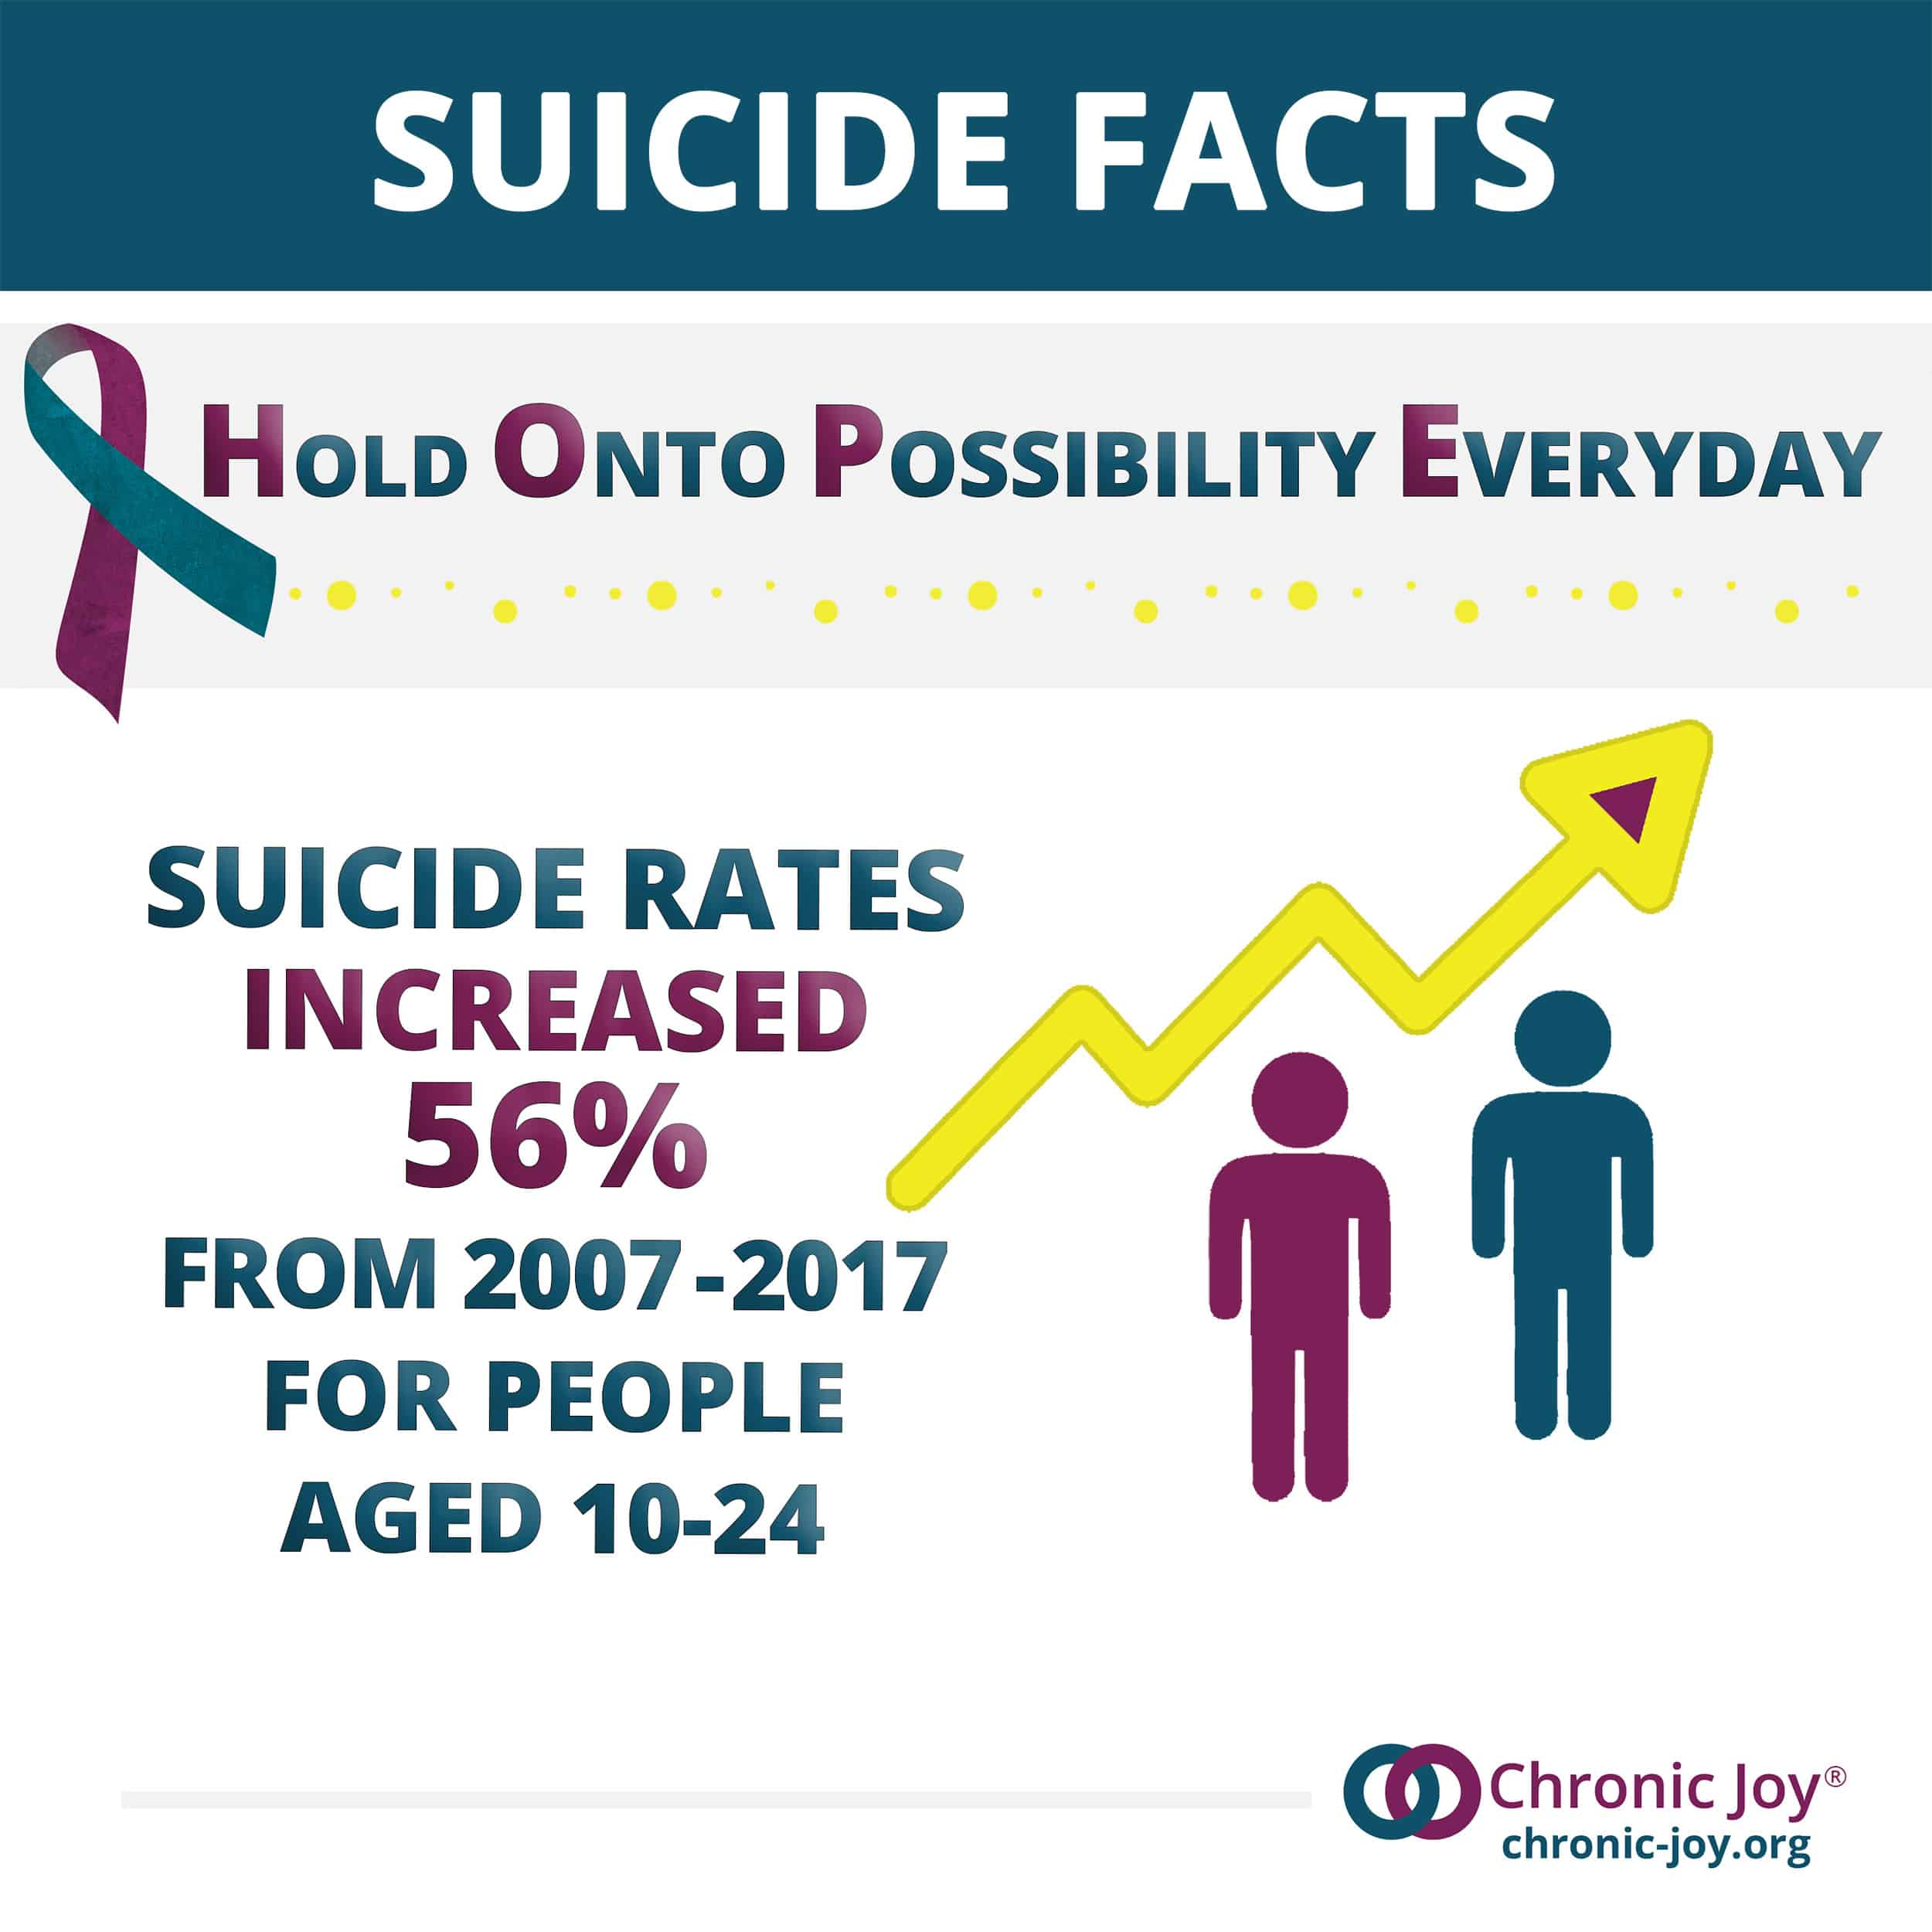 From 2007 to 2017 suicide increased 56% for people aged 10-24.